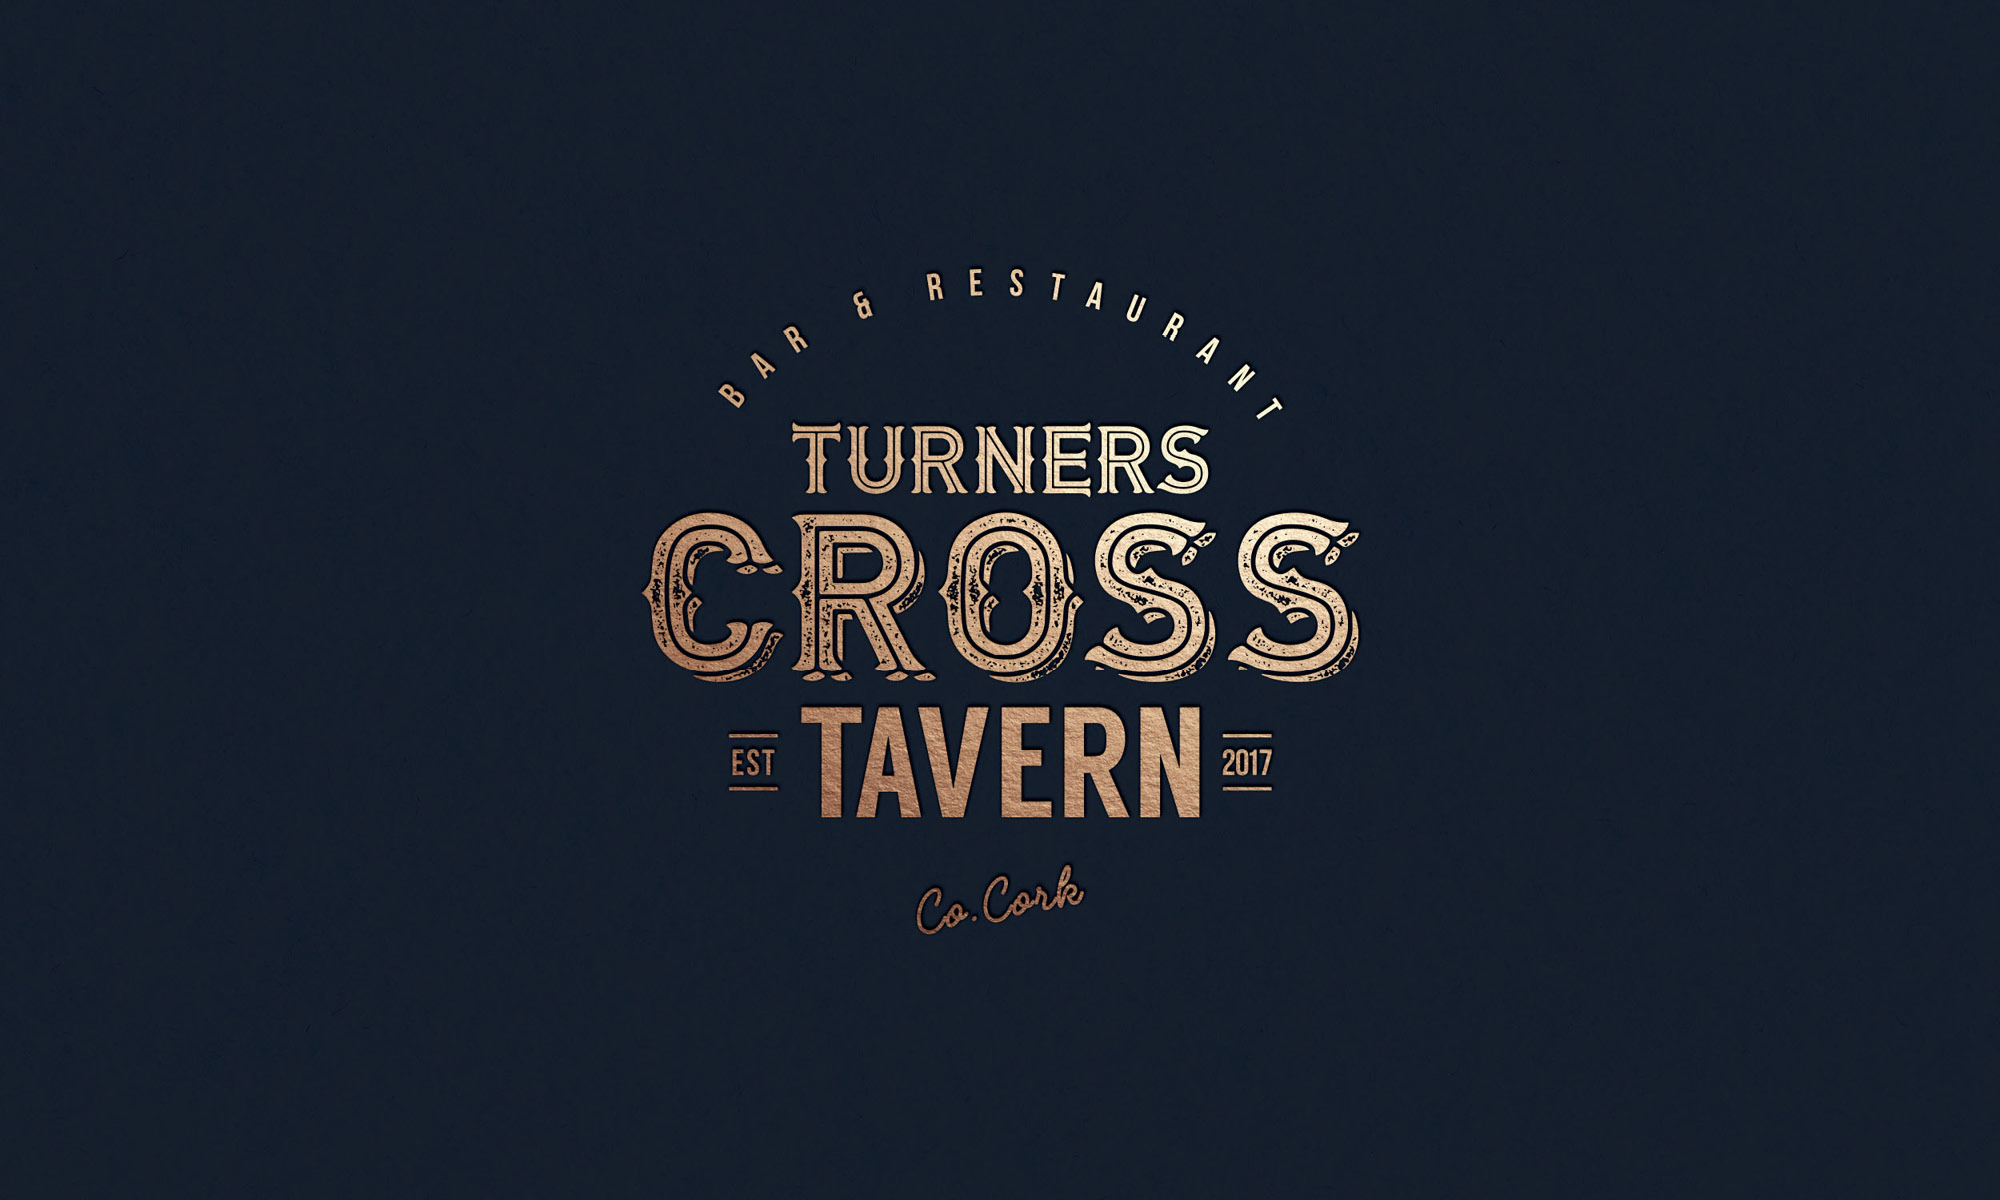 Cover image: Turner's Cross Tavern